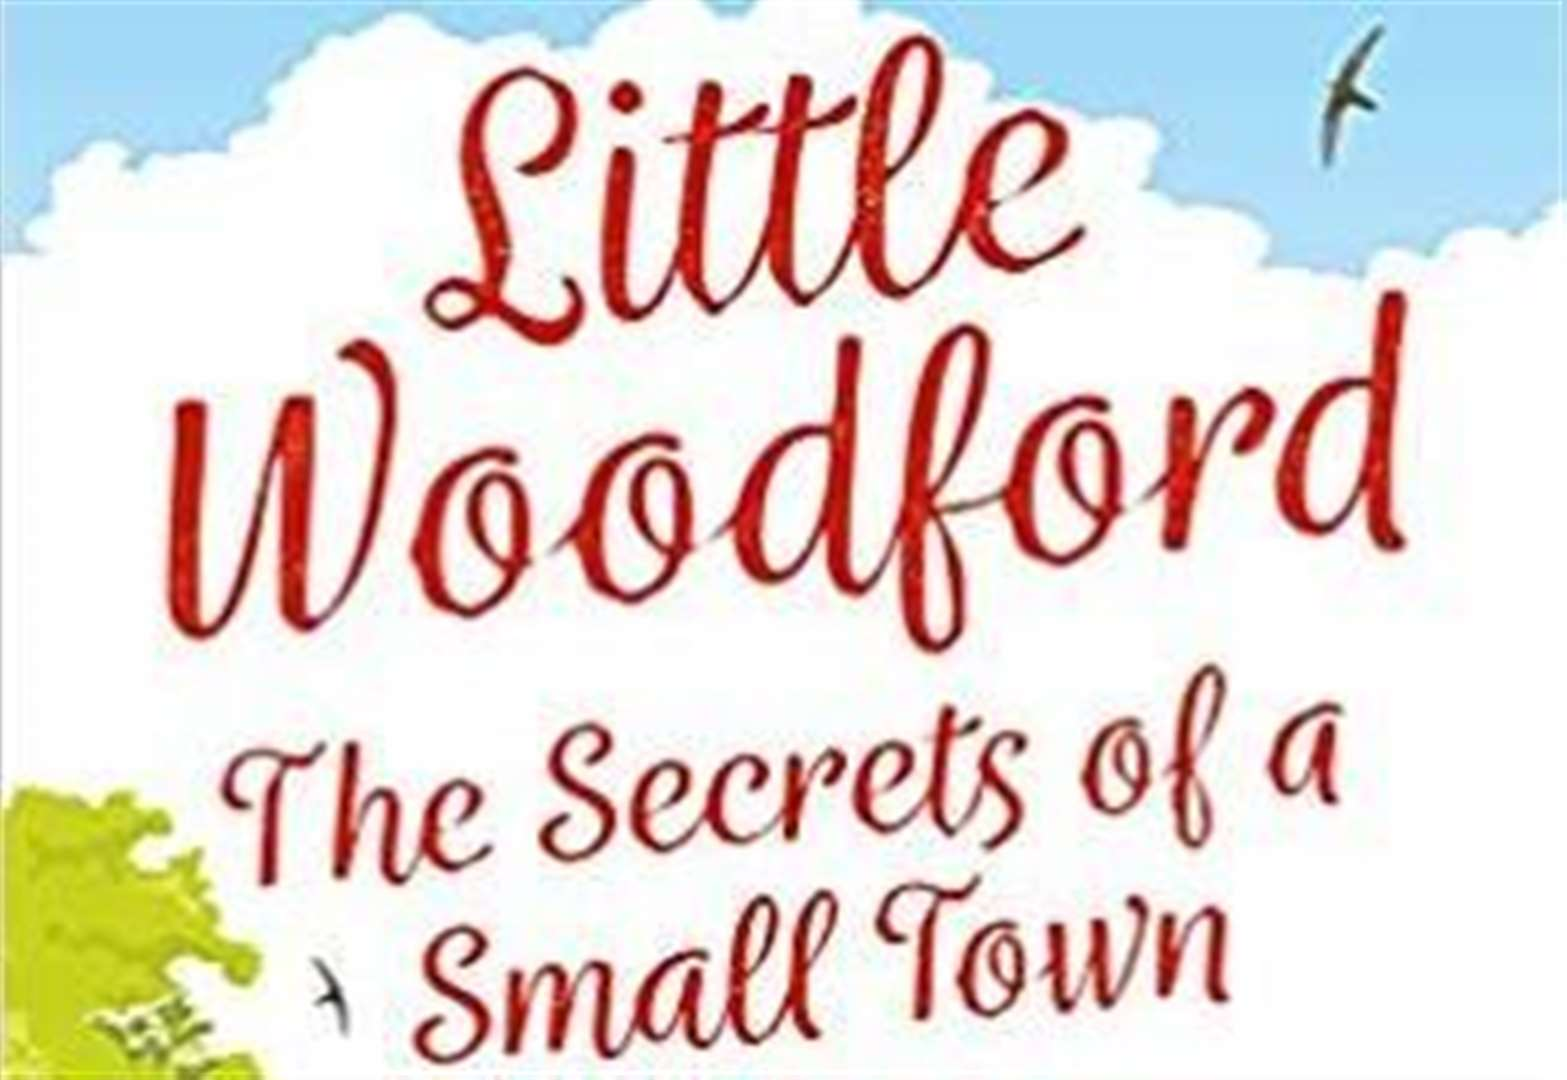 BOOK OF THE WEEK: Little Woodford by Catherine Jones